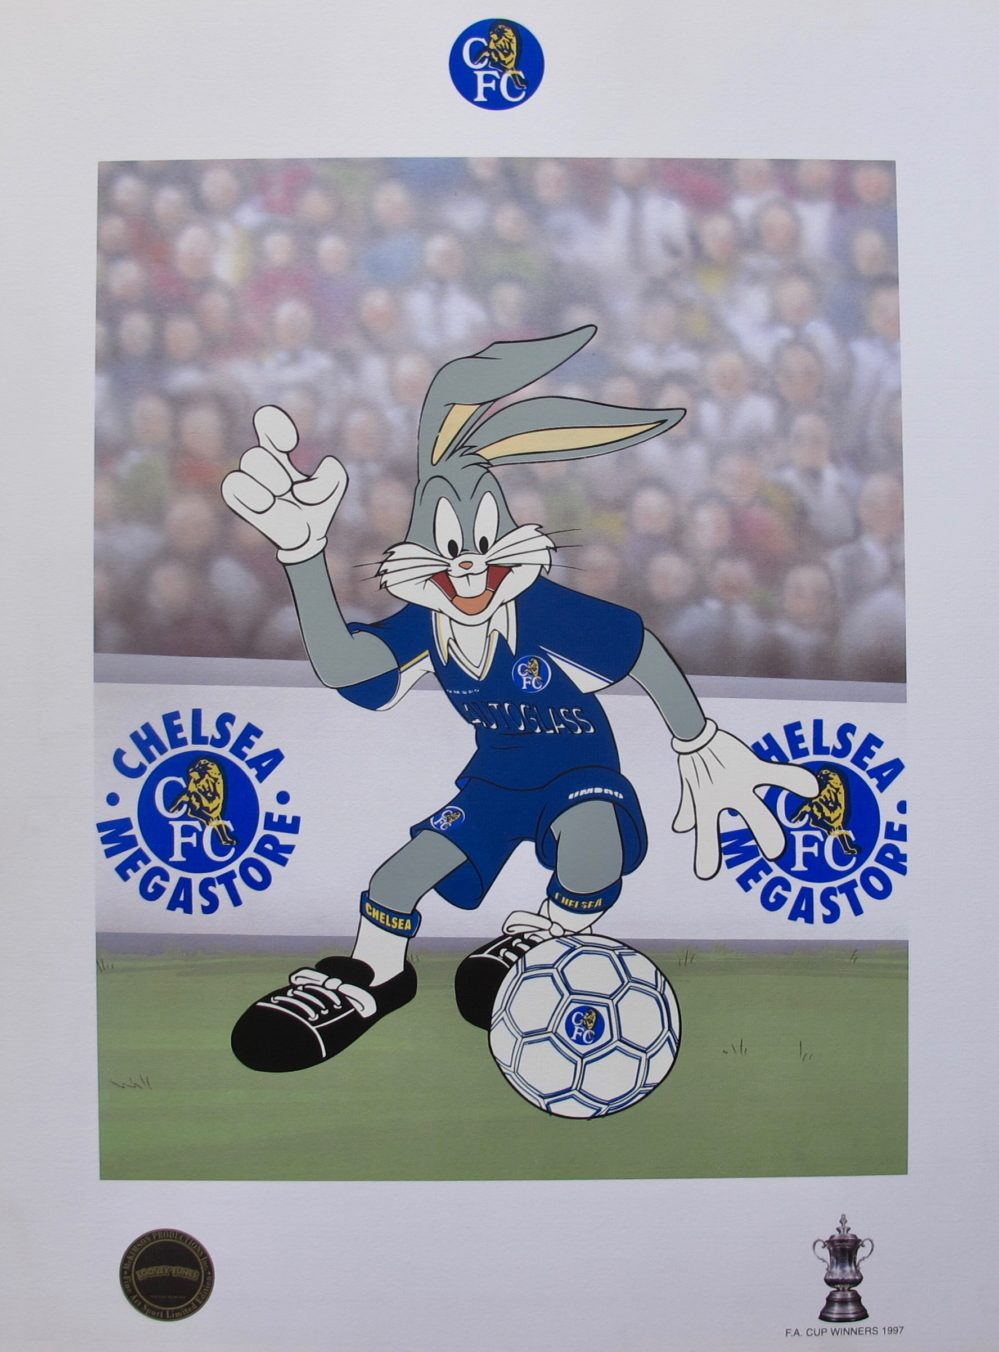 BUGS BUNNY CHELSEA SOCCER LOONEY TUNES Limited Edition Art Lithograph Football